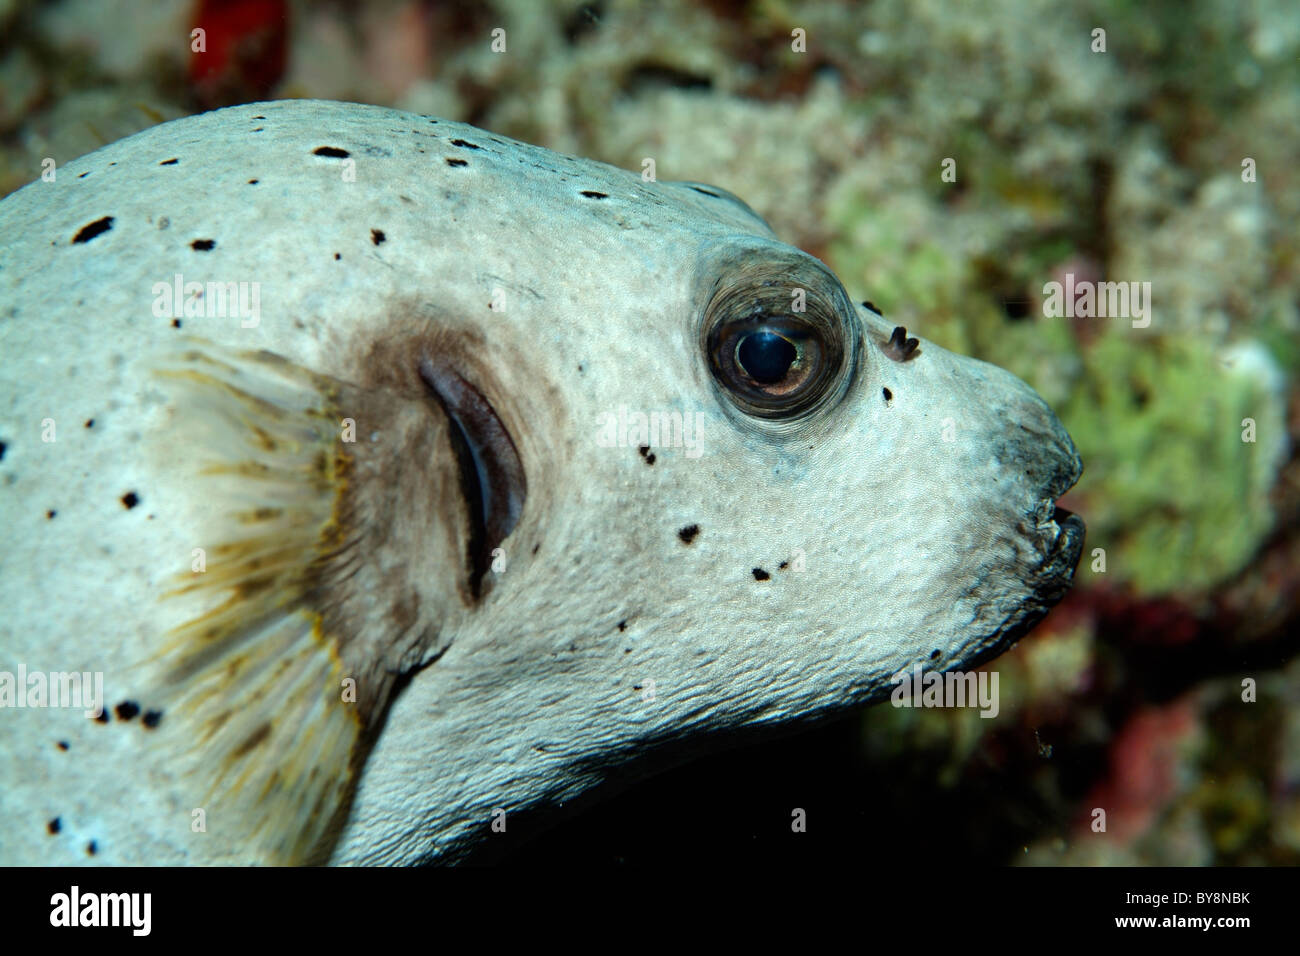 Blackspotted puffer fish or dog faced puffer arothron for Dog face puffer fish